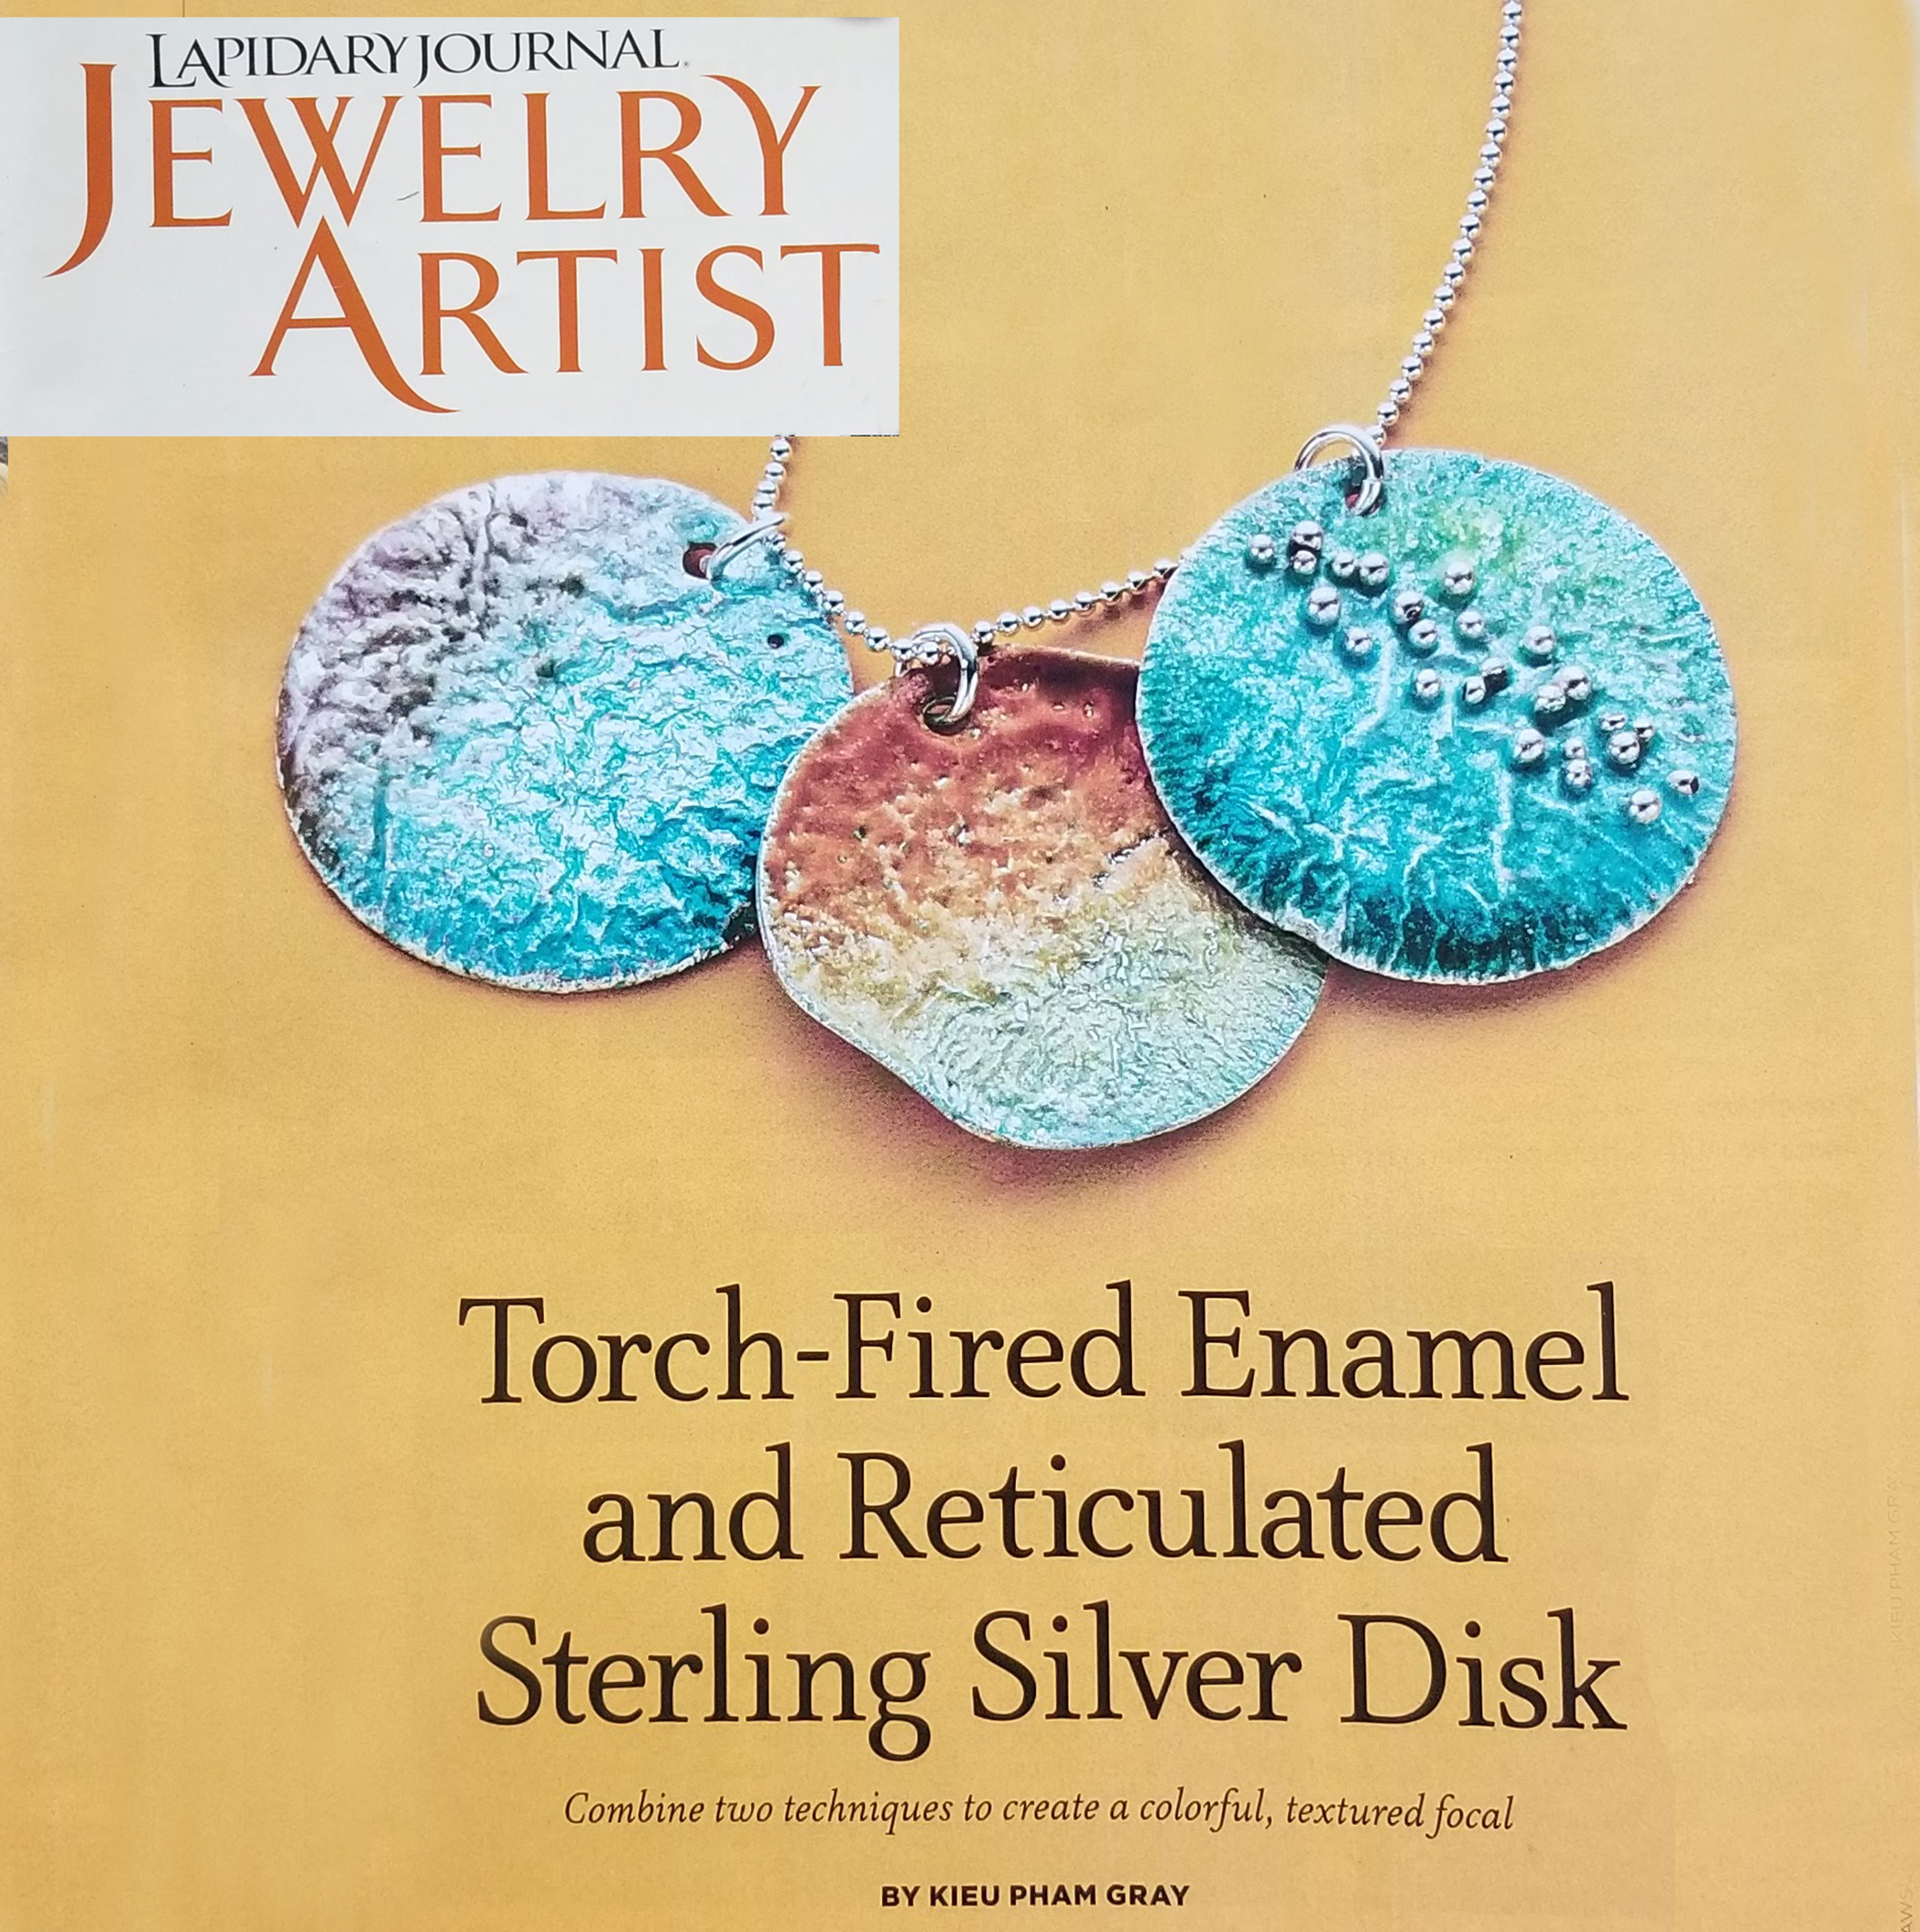 Article: Torch-Fired Enamel